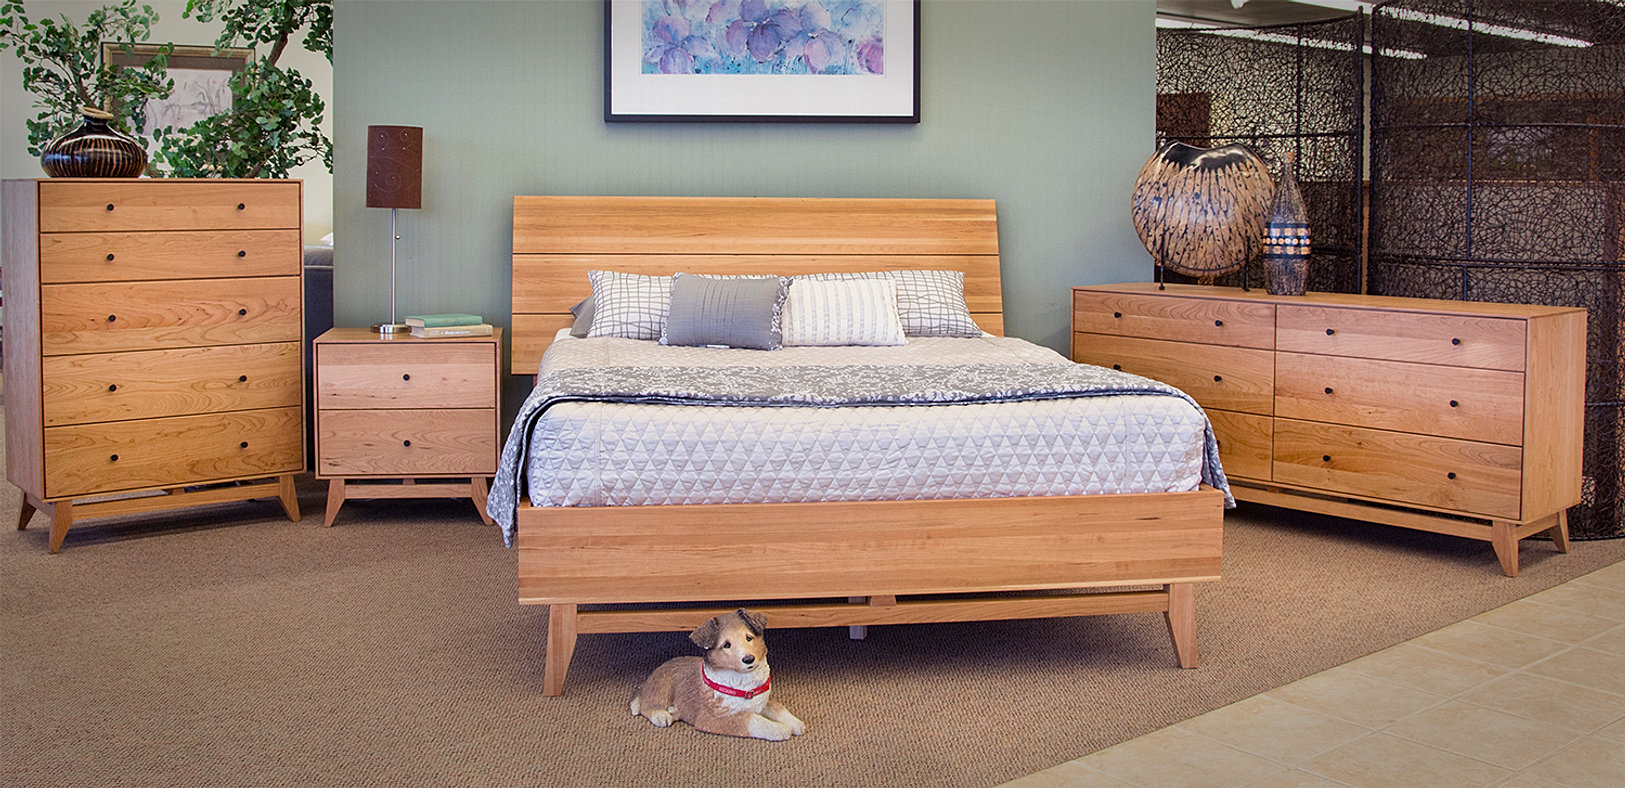 Woodcastle - Forever Furniture | American Made | Home, Hotel Bedroom